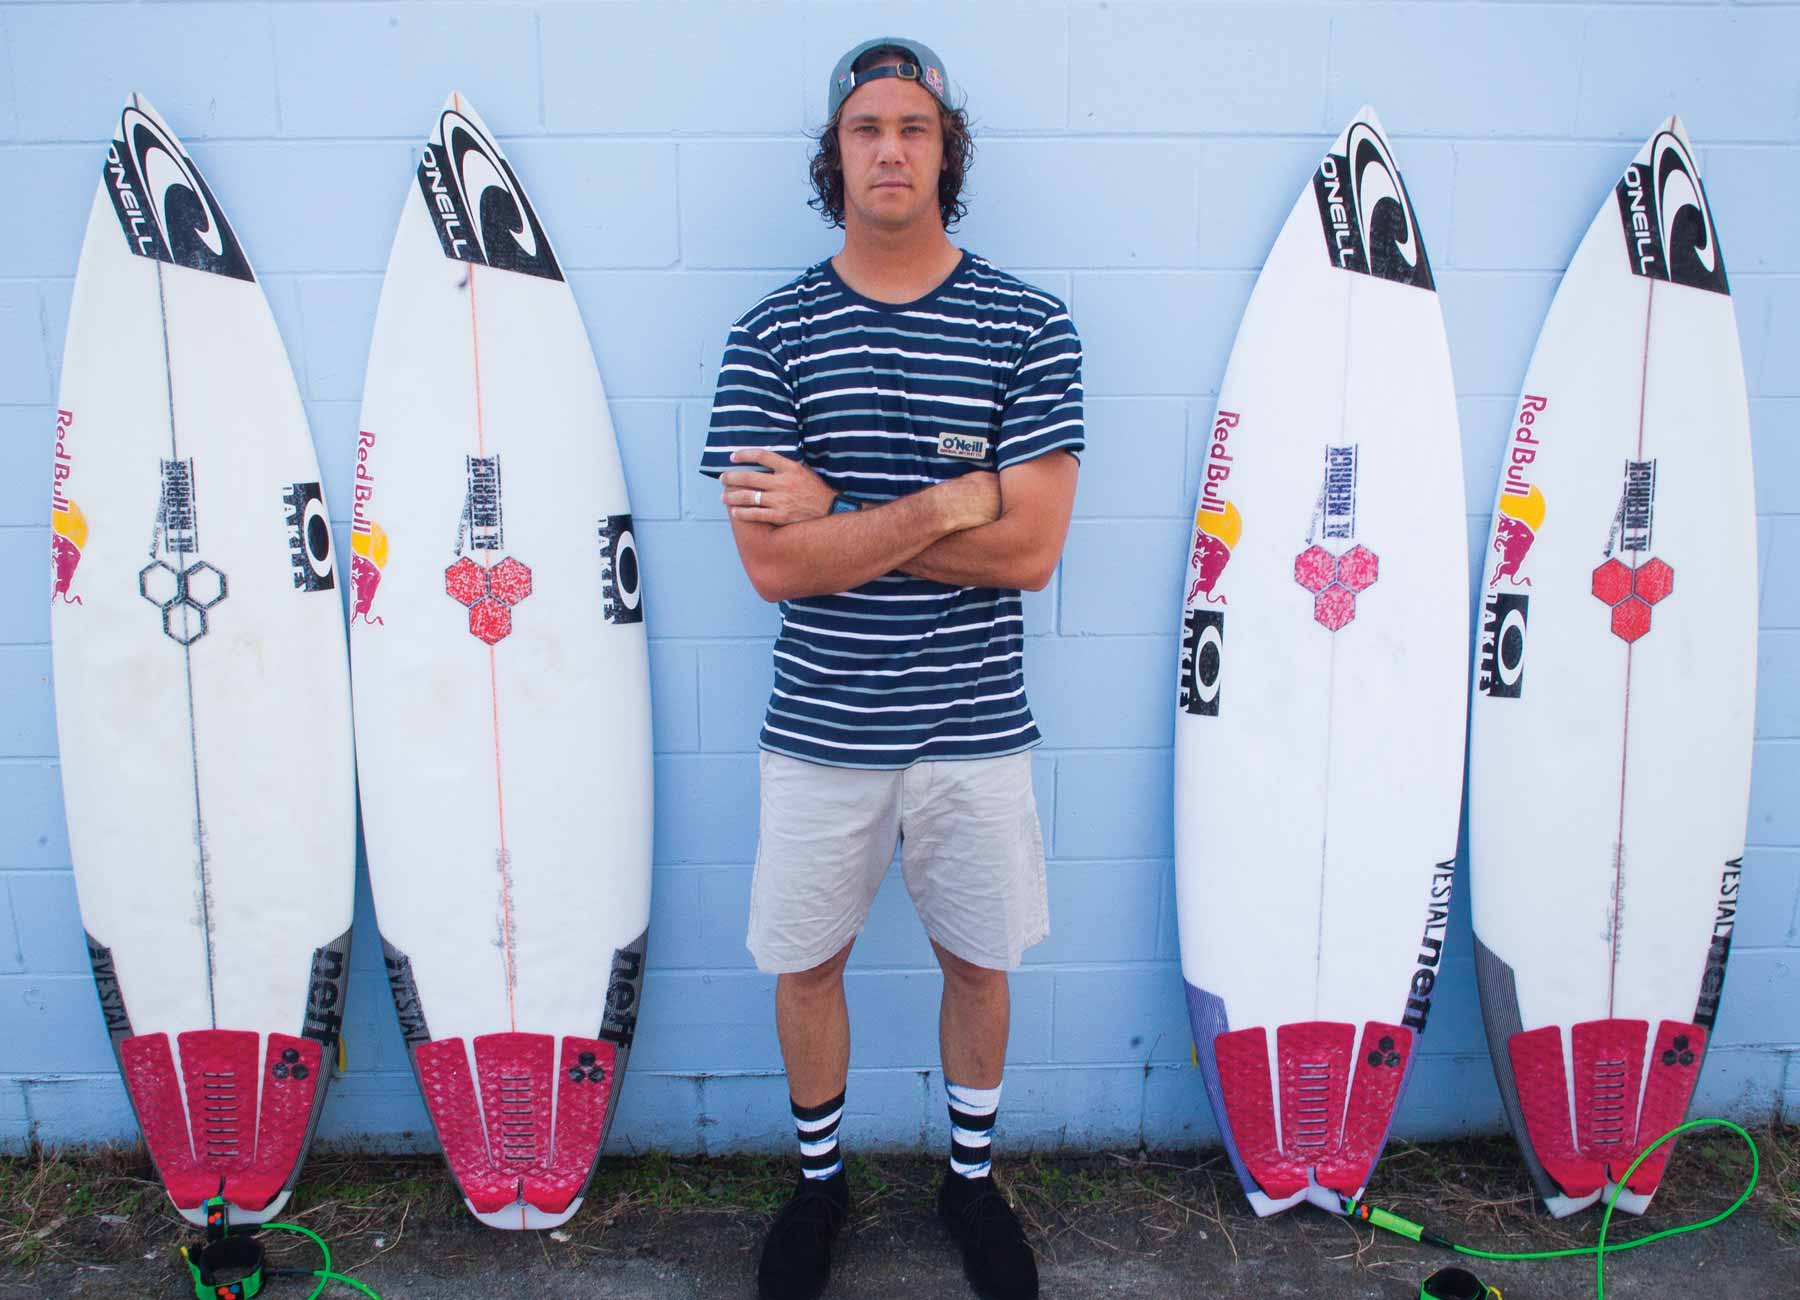 About Channel Islands Surfboards